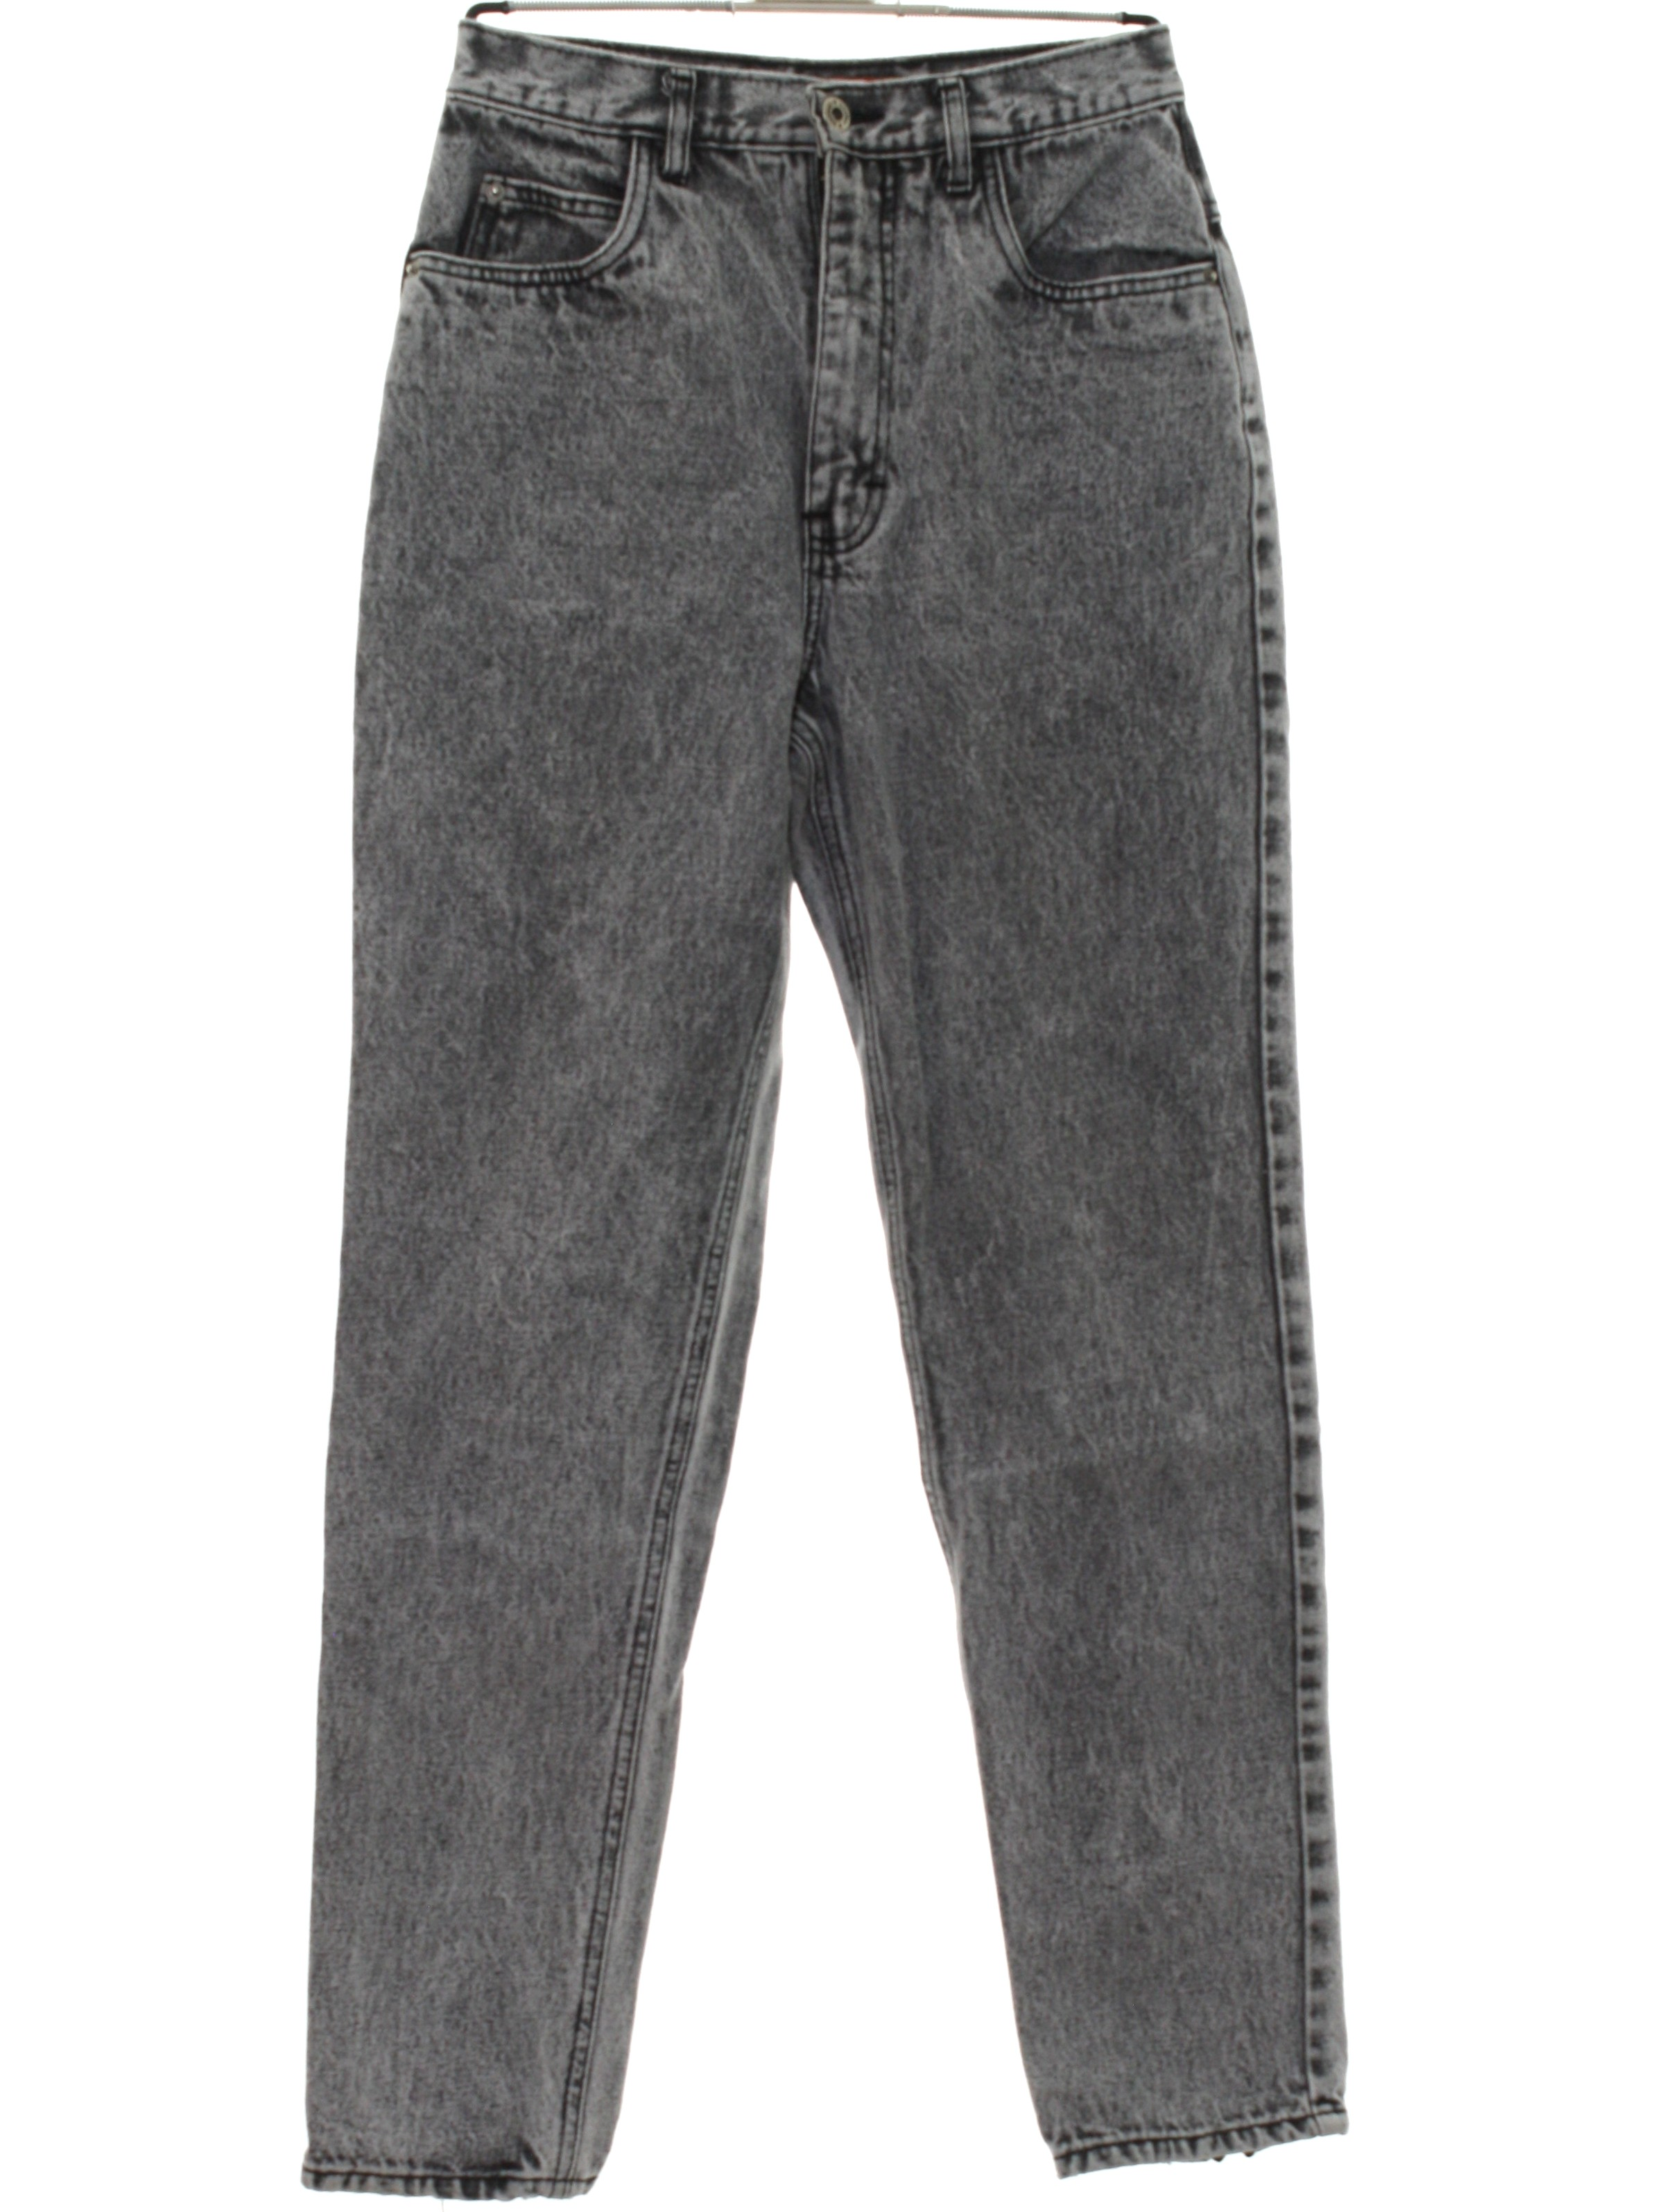 Mens Jeans With Zipper At Ankle